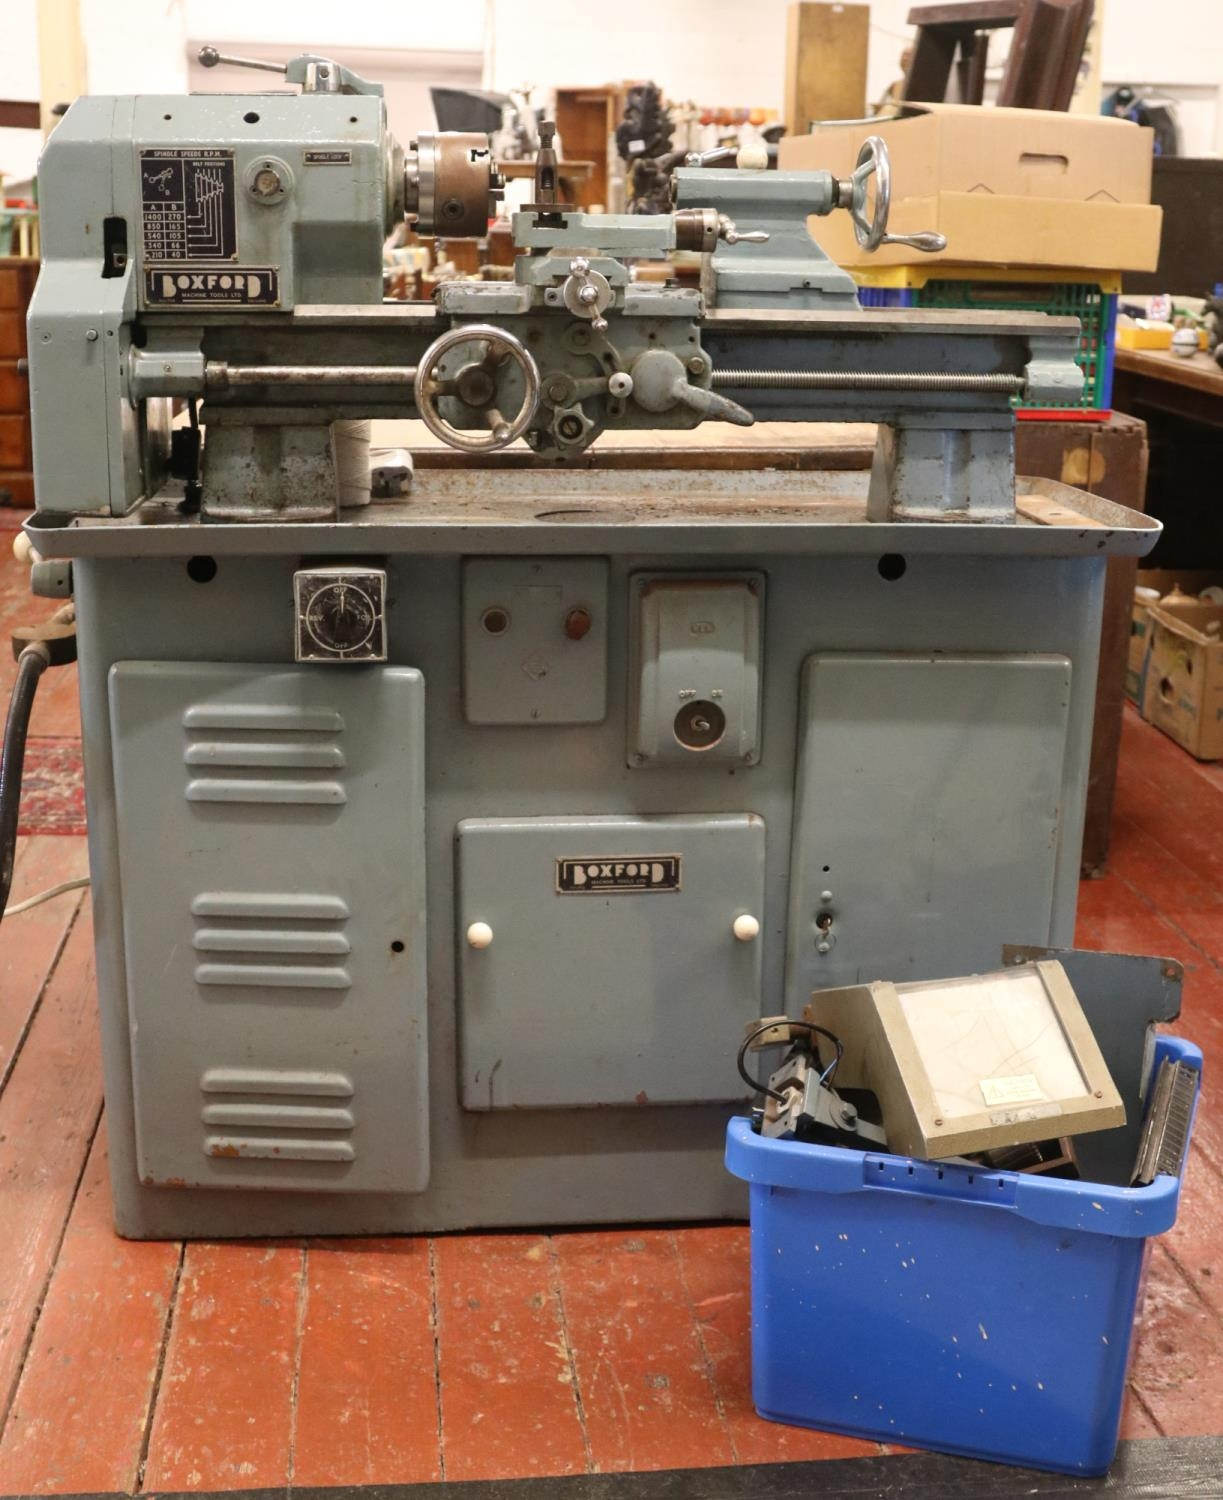 A 'Boxford' metal working lathe together with & box of spare parts. H:117cm,W:107cm,D:44cm.